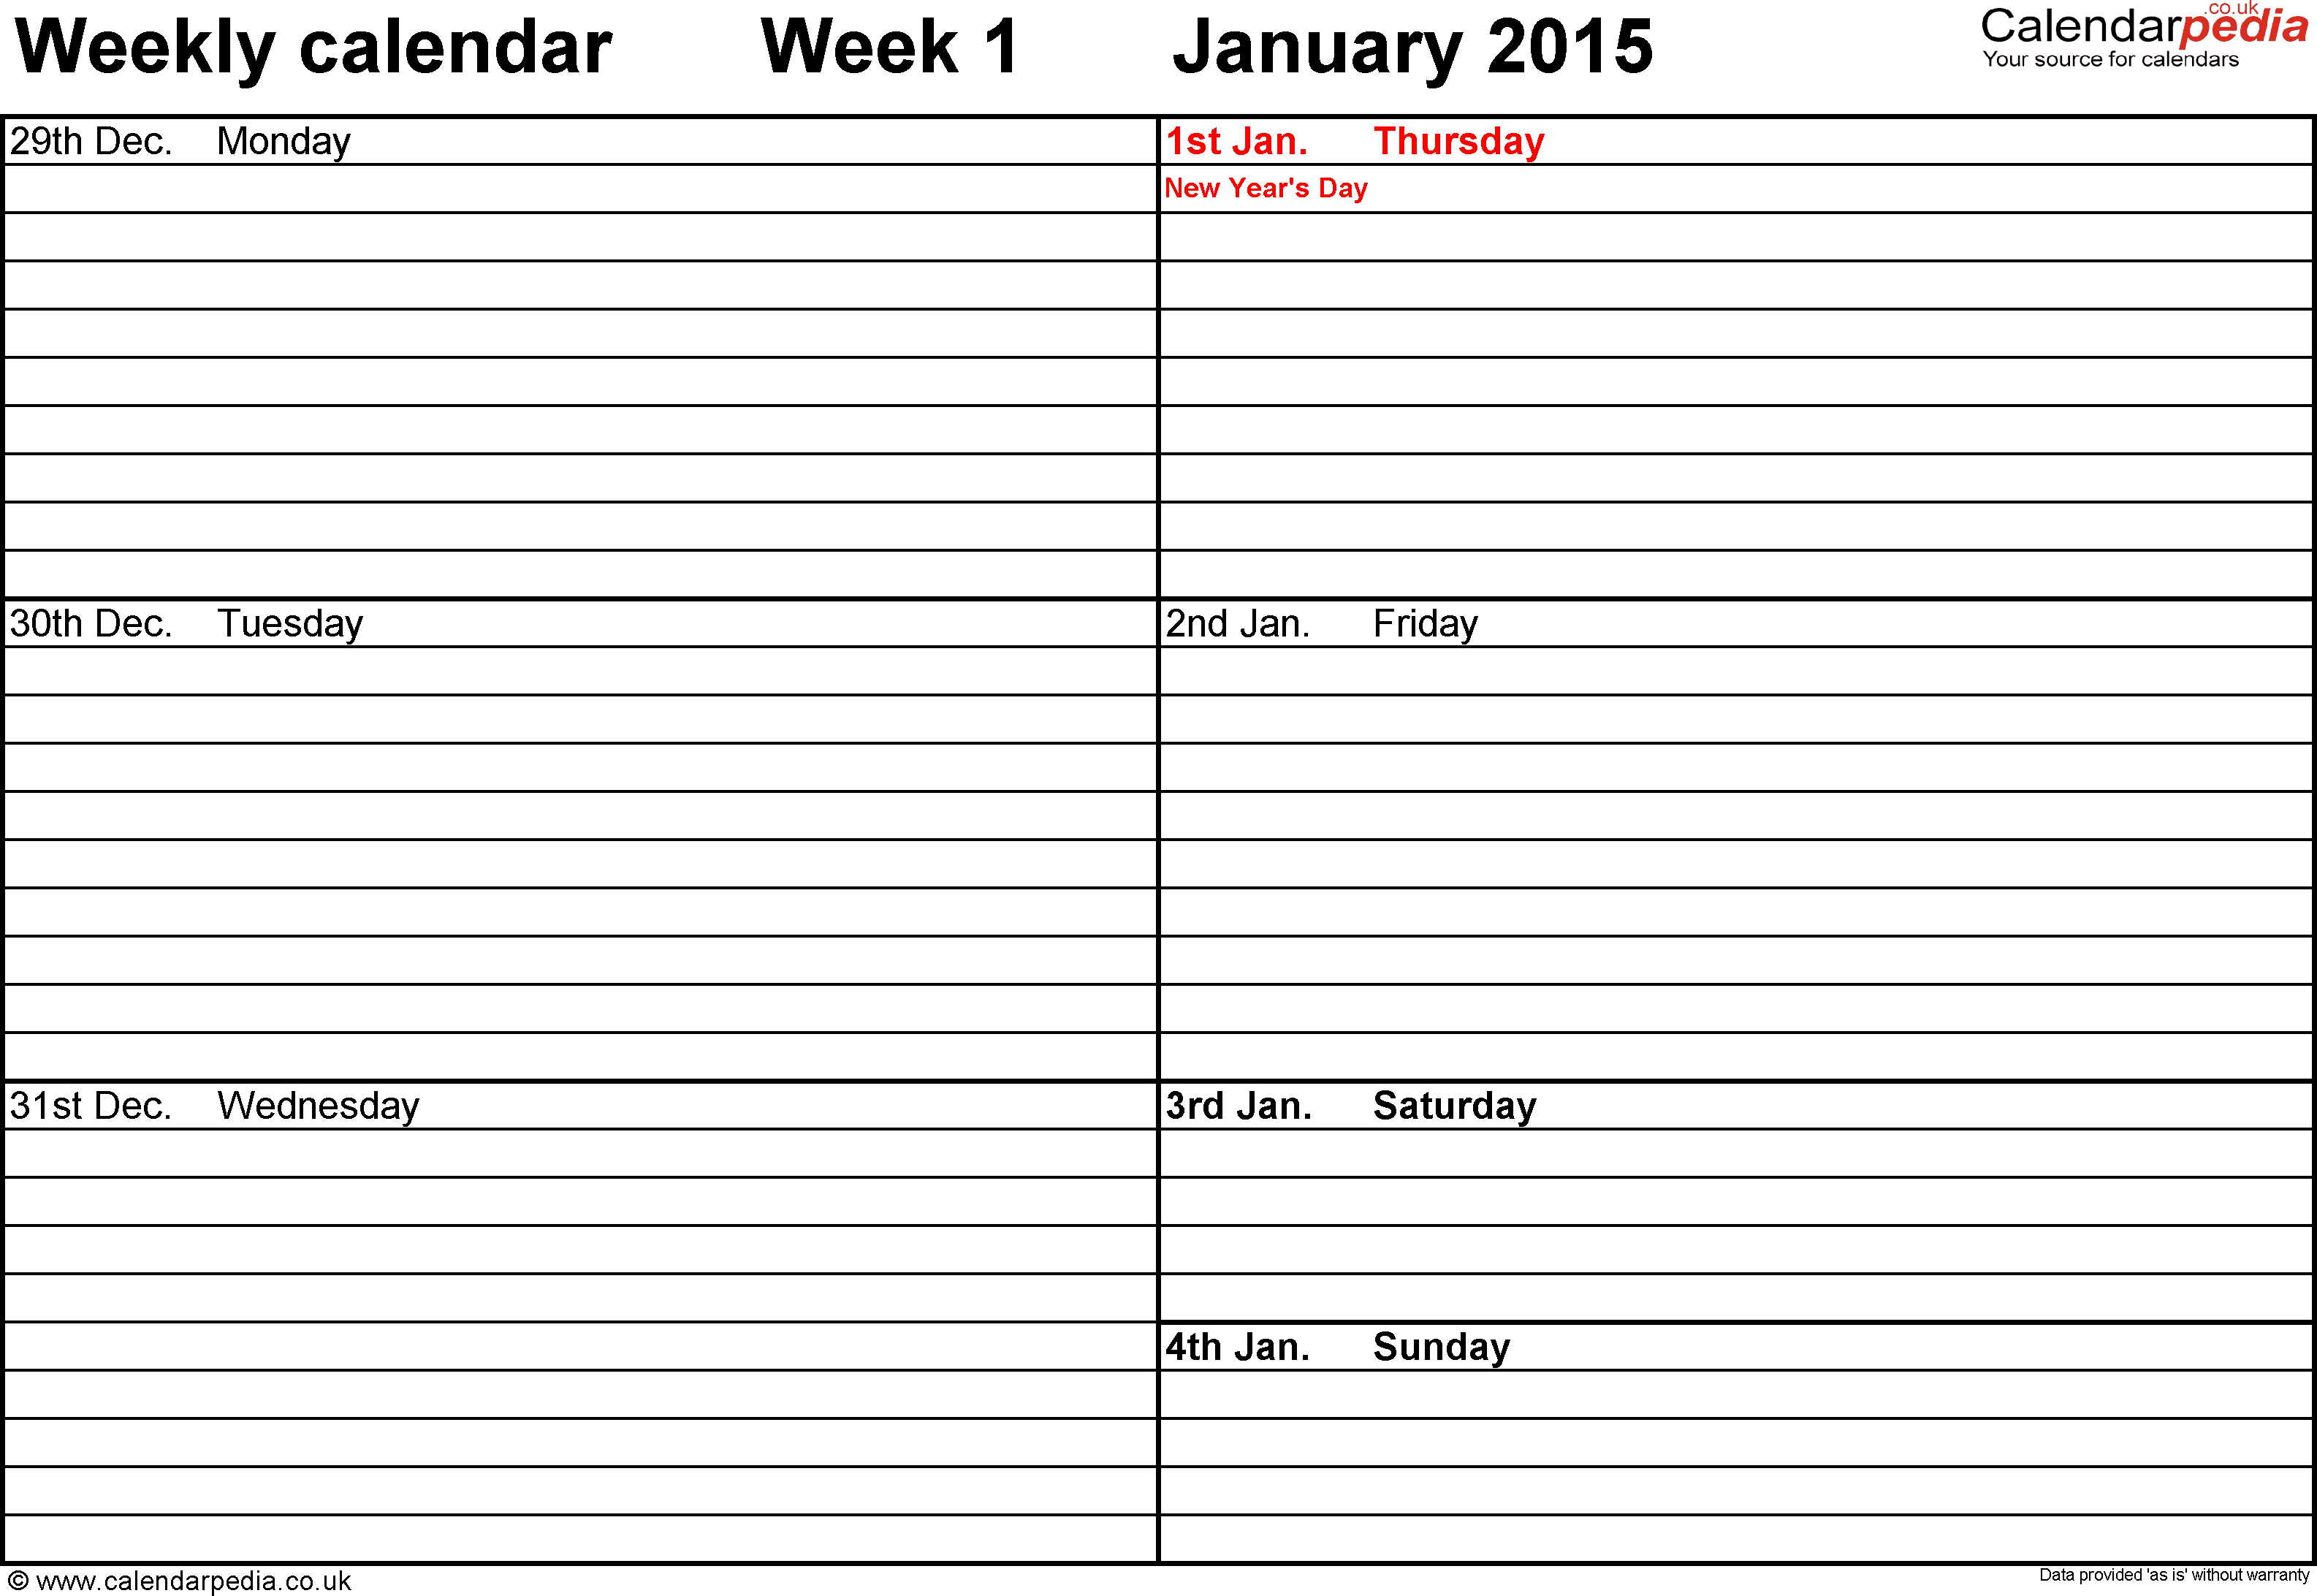 2 week schedule template excel - weekly calendar 2015 uk free printable templates for excel